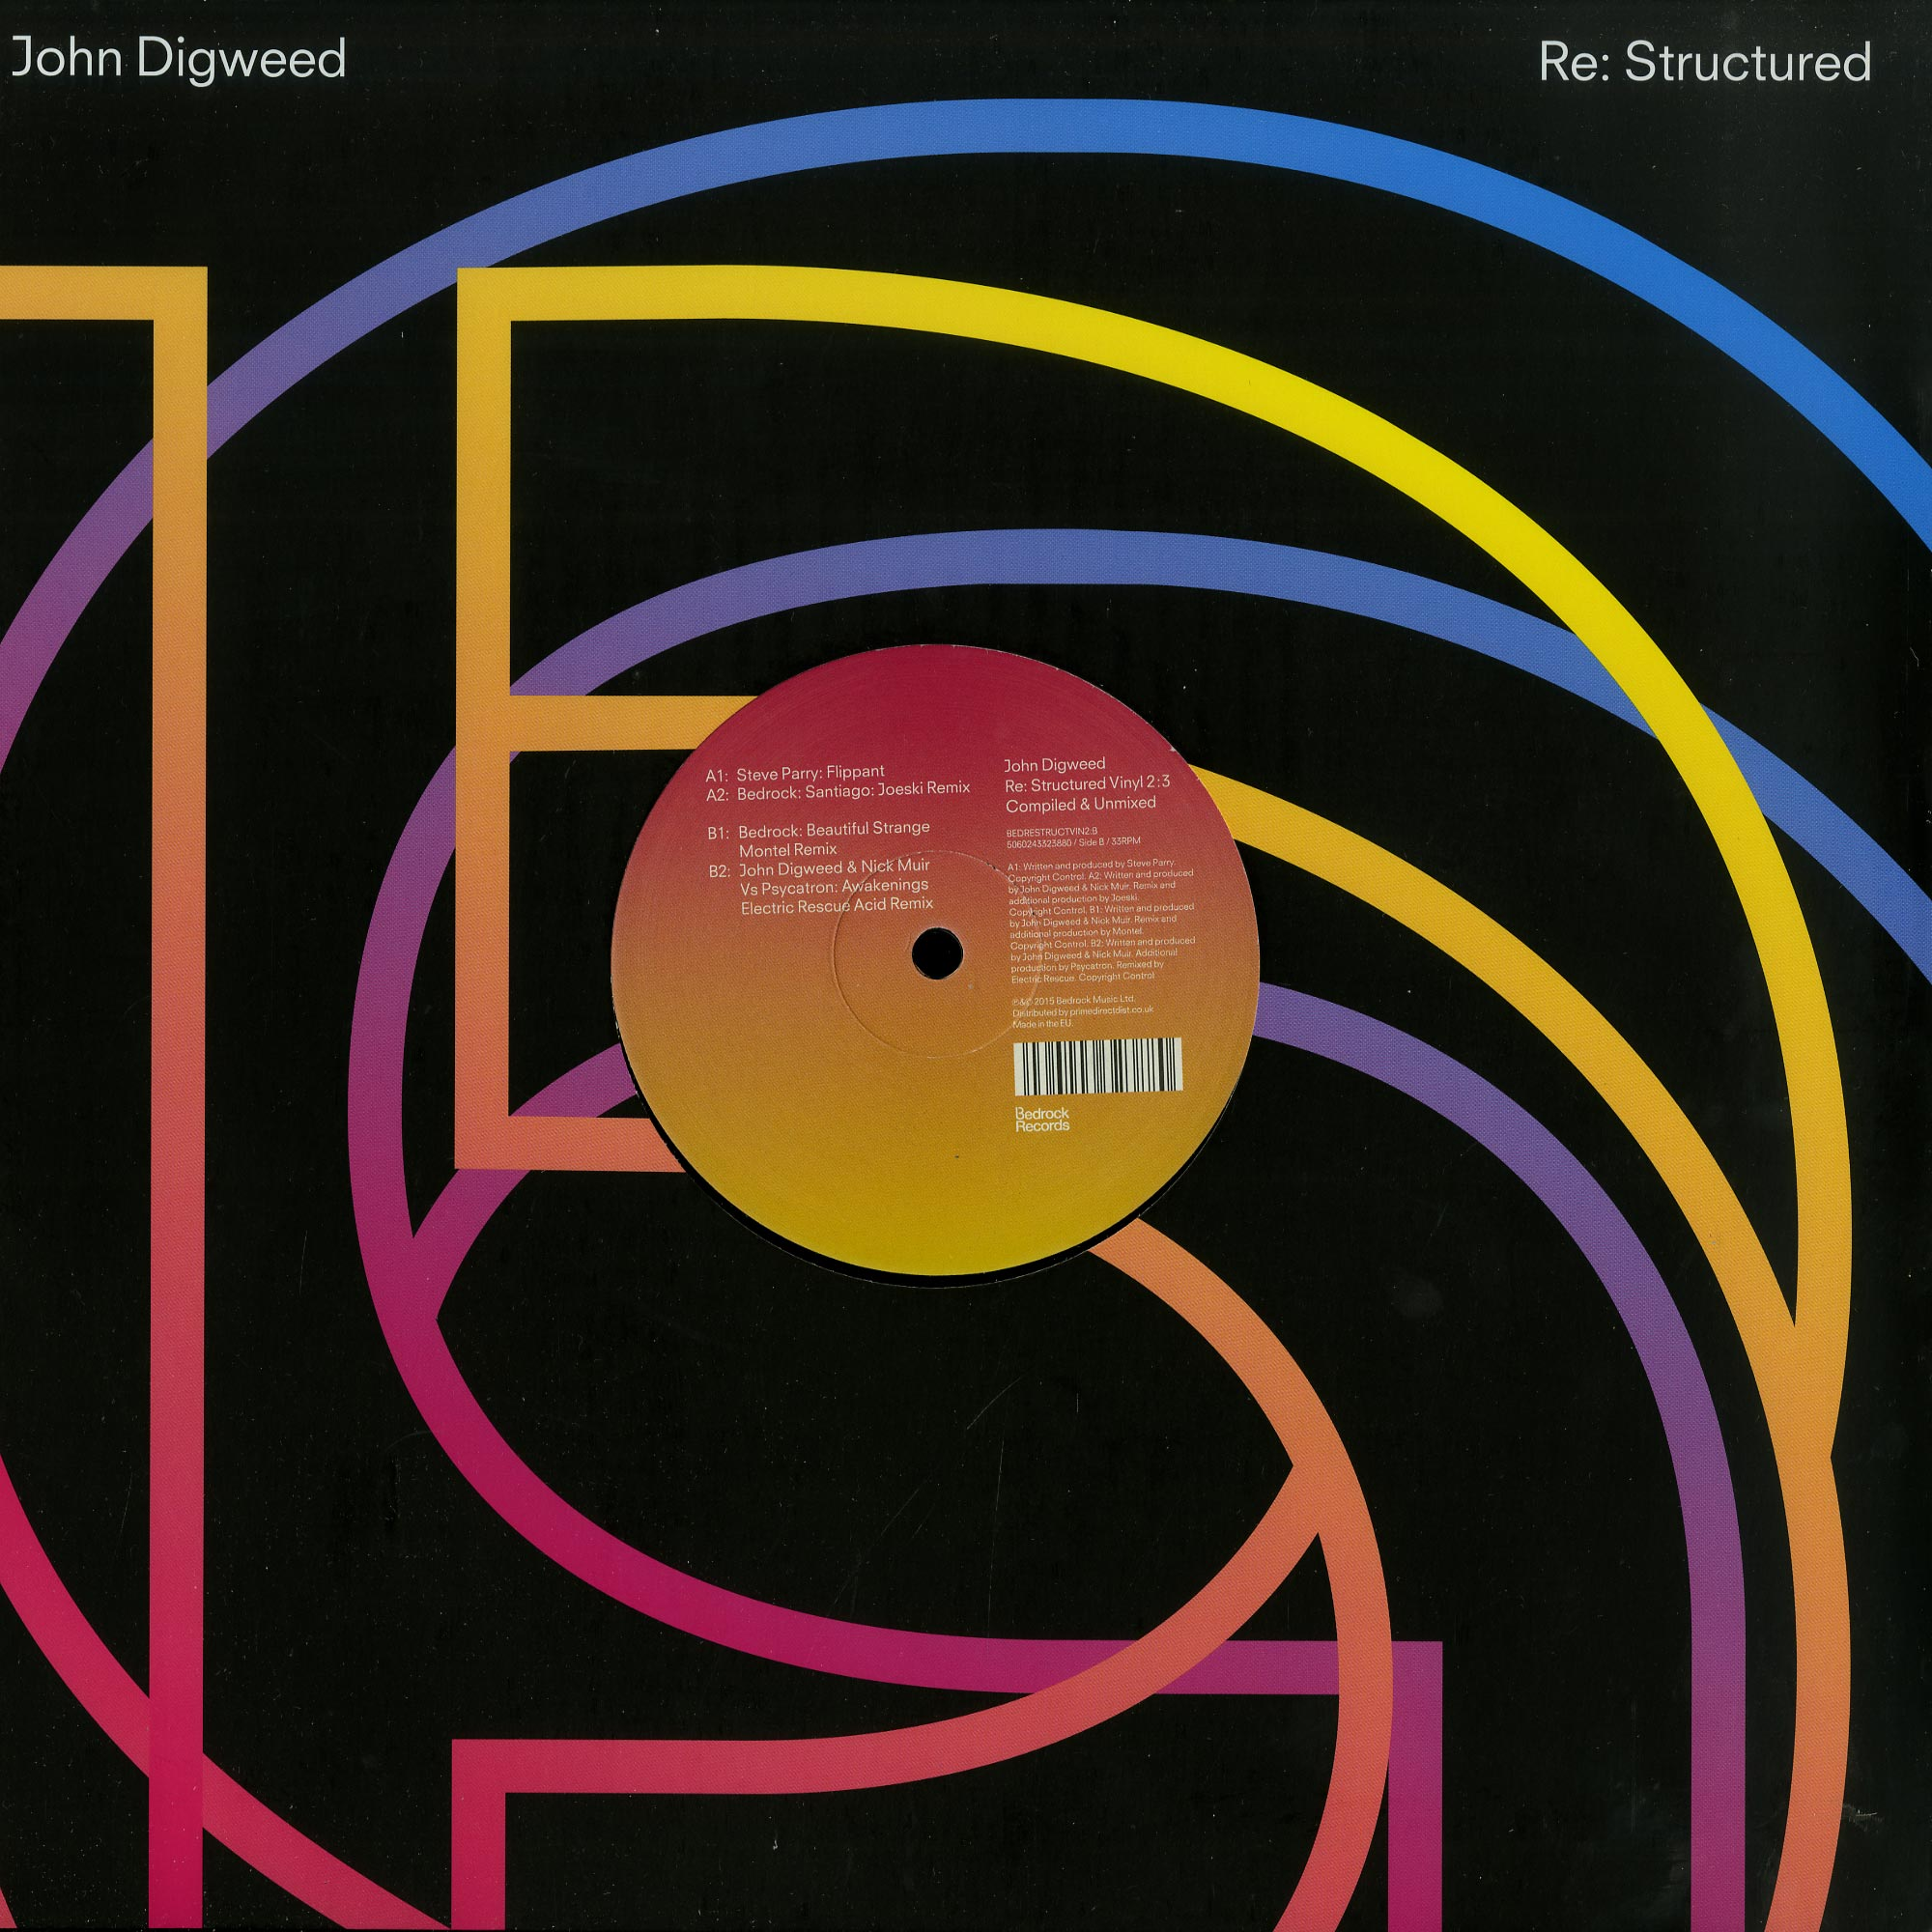 John Digweed Pres - RE: STRUCTURED VINYL 2